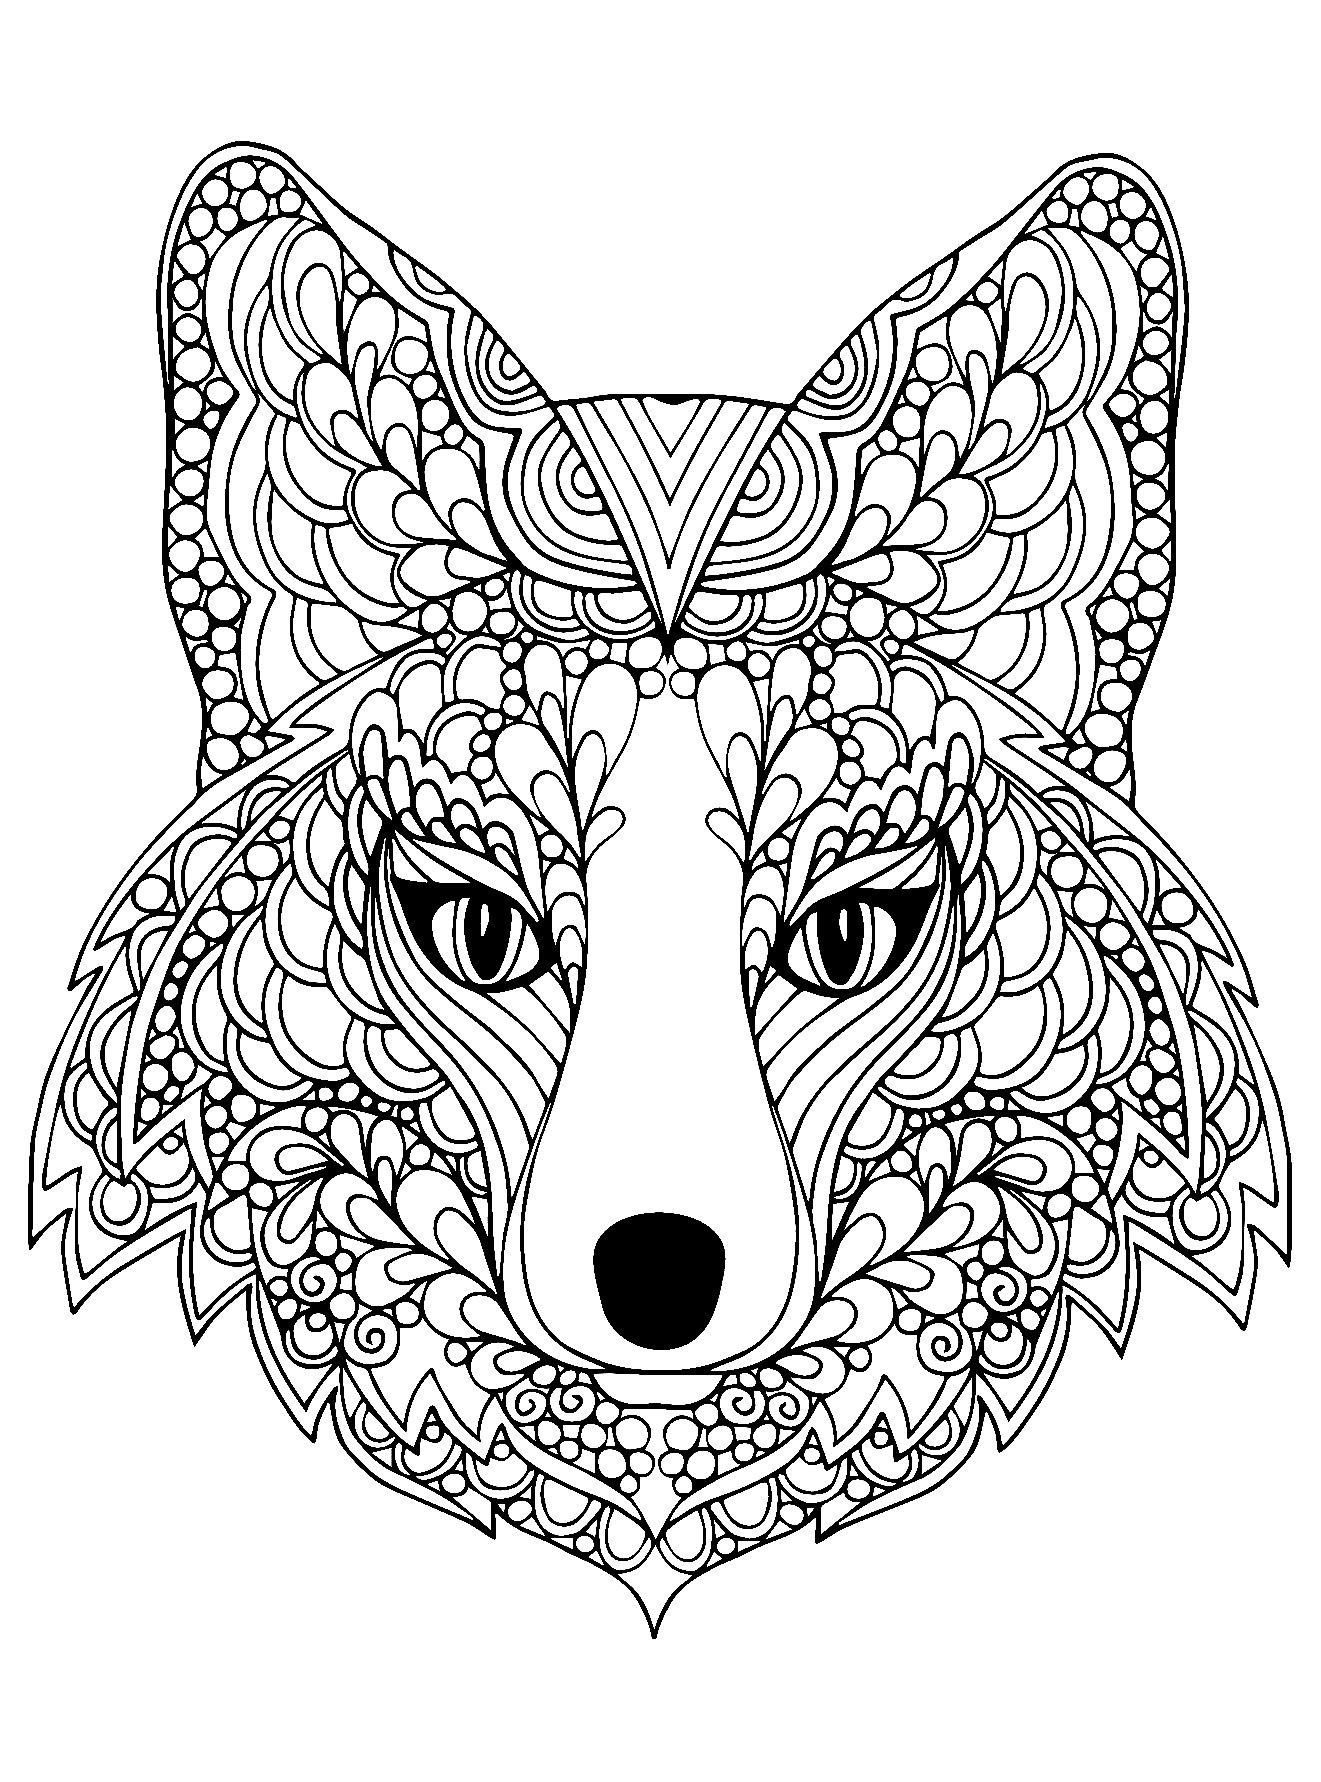 Coloring Pages : Printable Animal Coloring Pages Free Wild Sheets - Free Printable Animal Coloring Pages